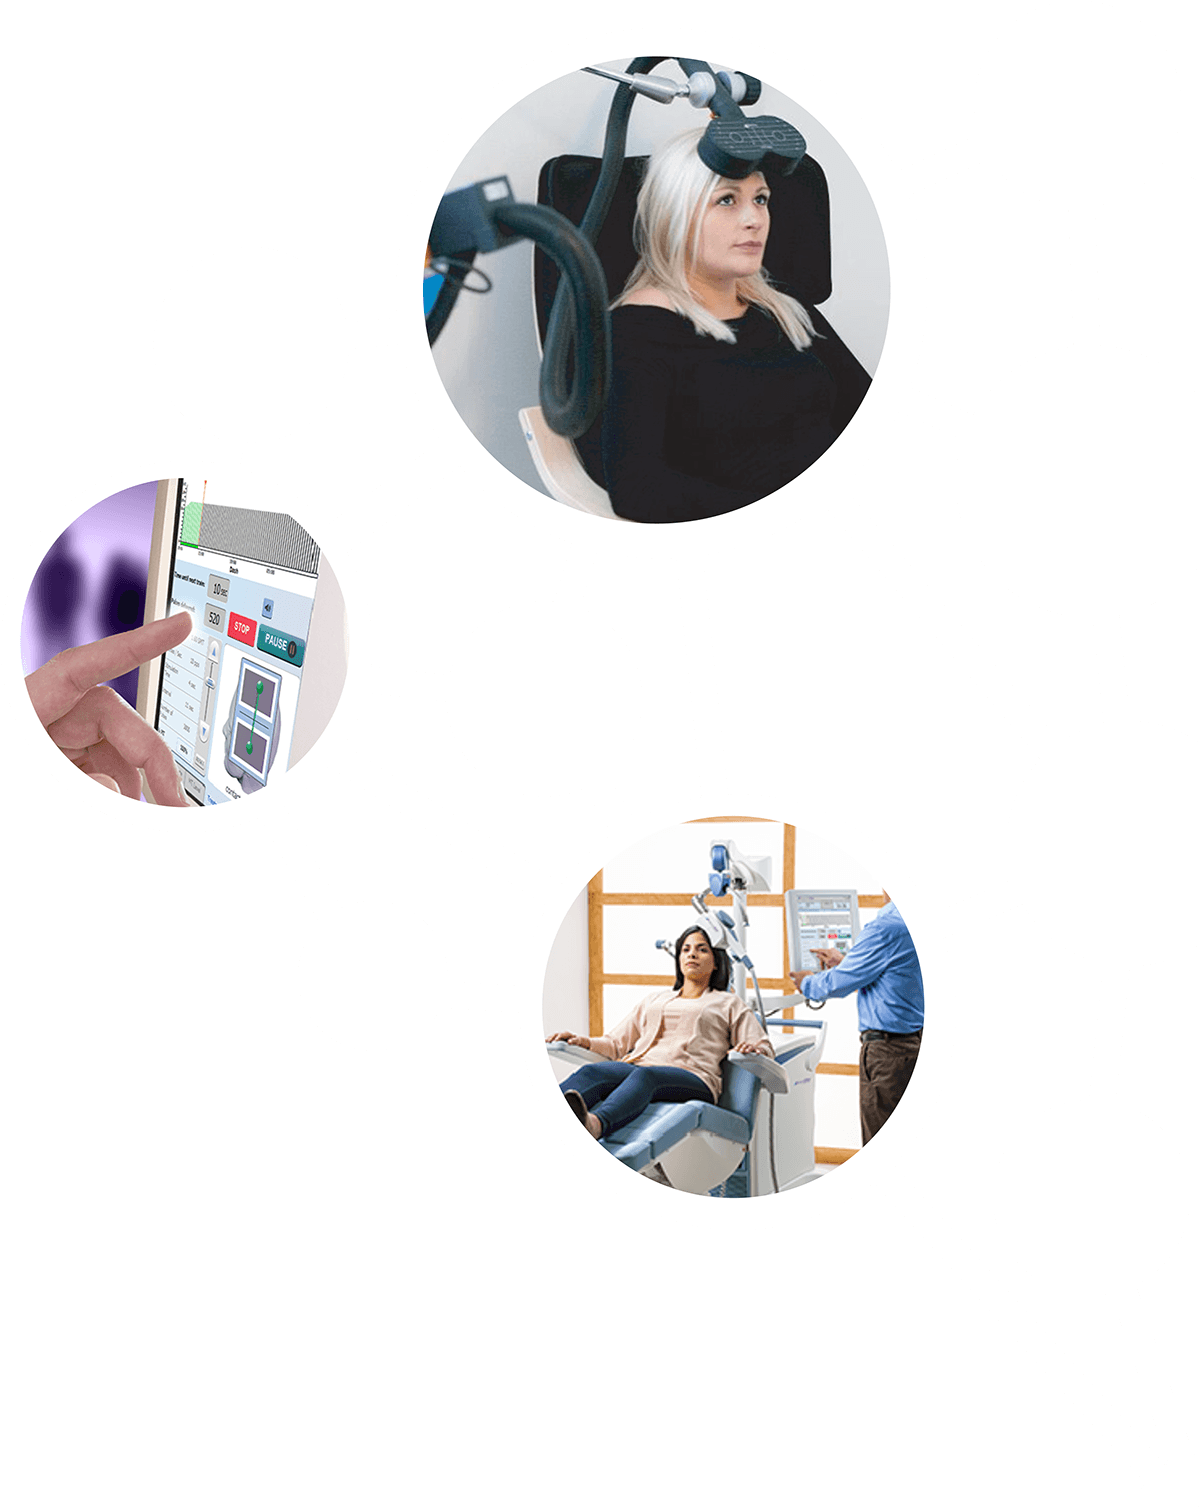 A web of photos showing TMS therapy machines in use